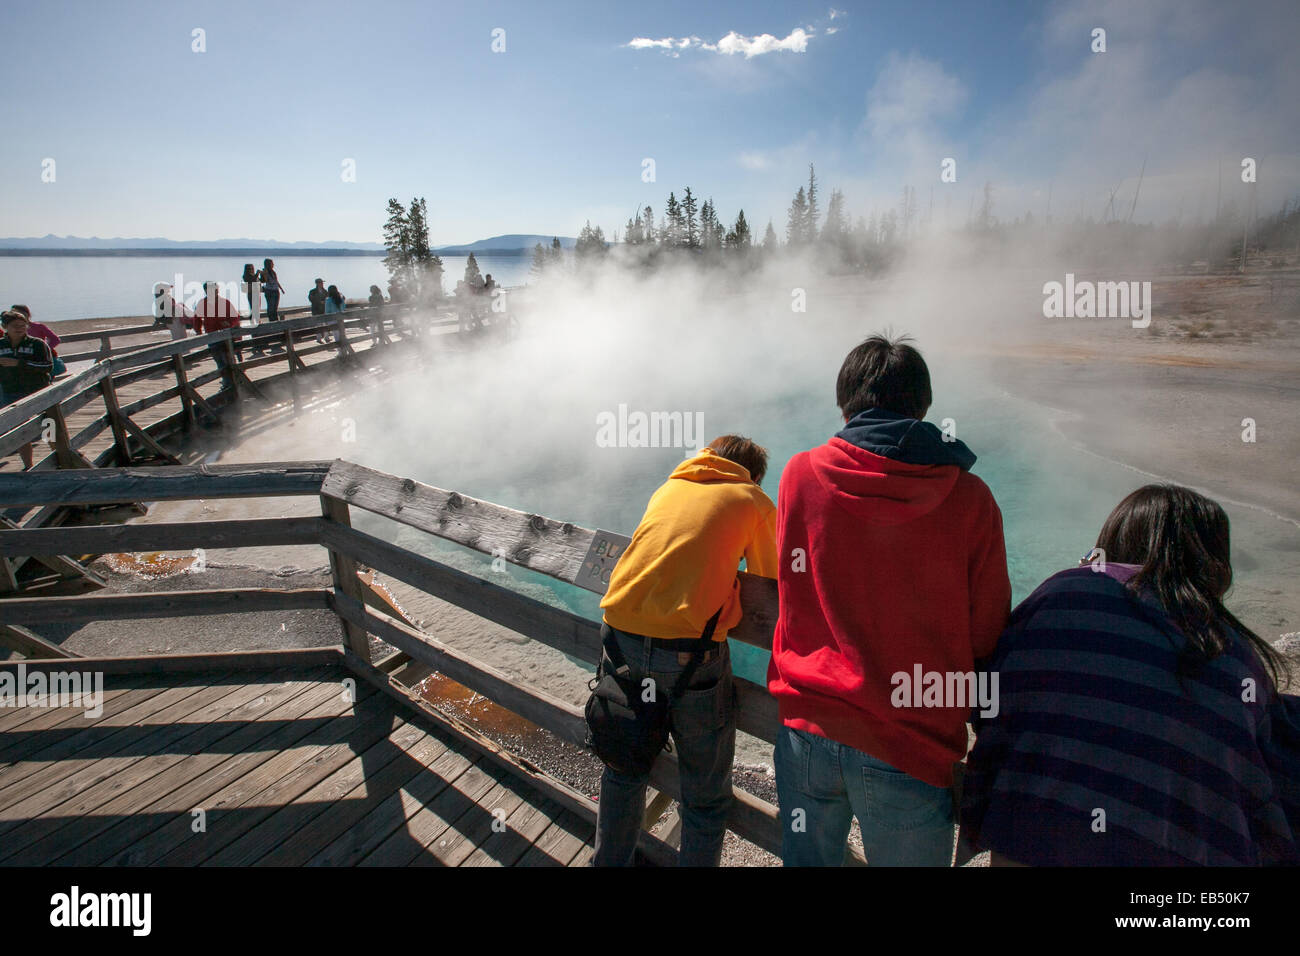 Tourists lean over a railing to observe geothermal features in a geyser basin. - Stock Image